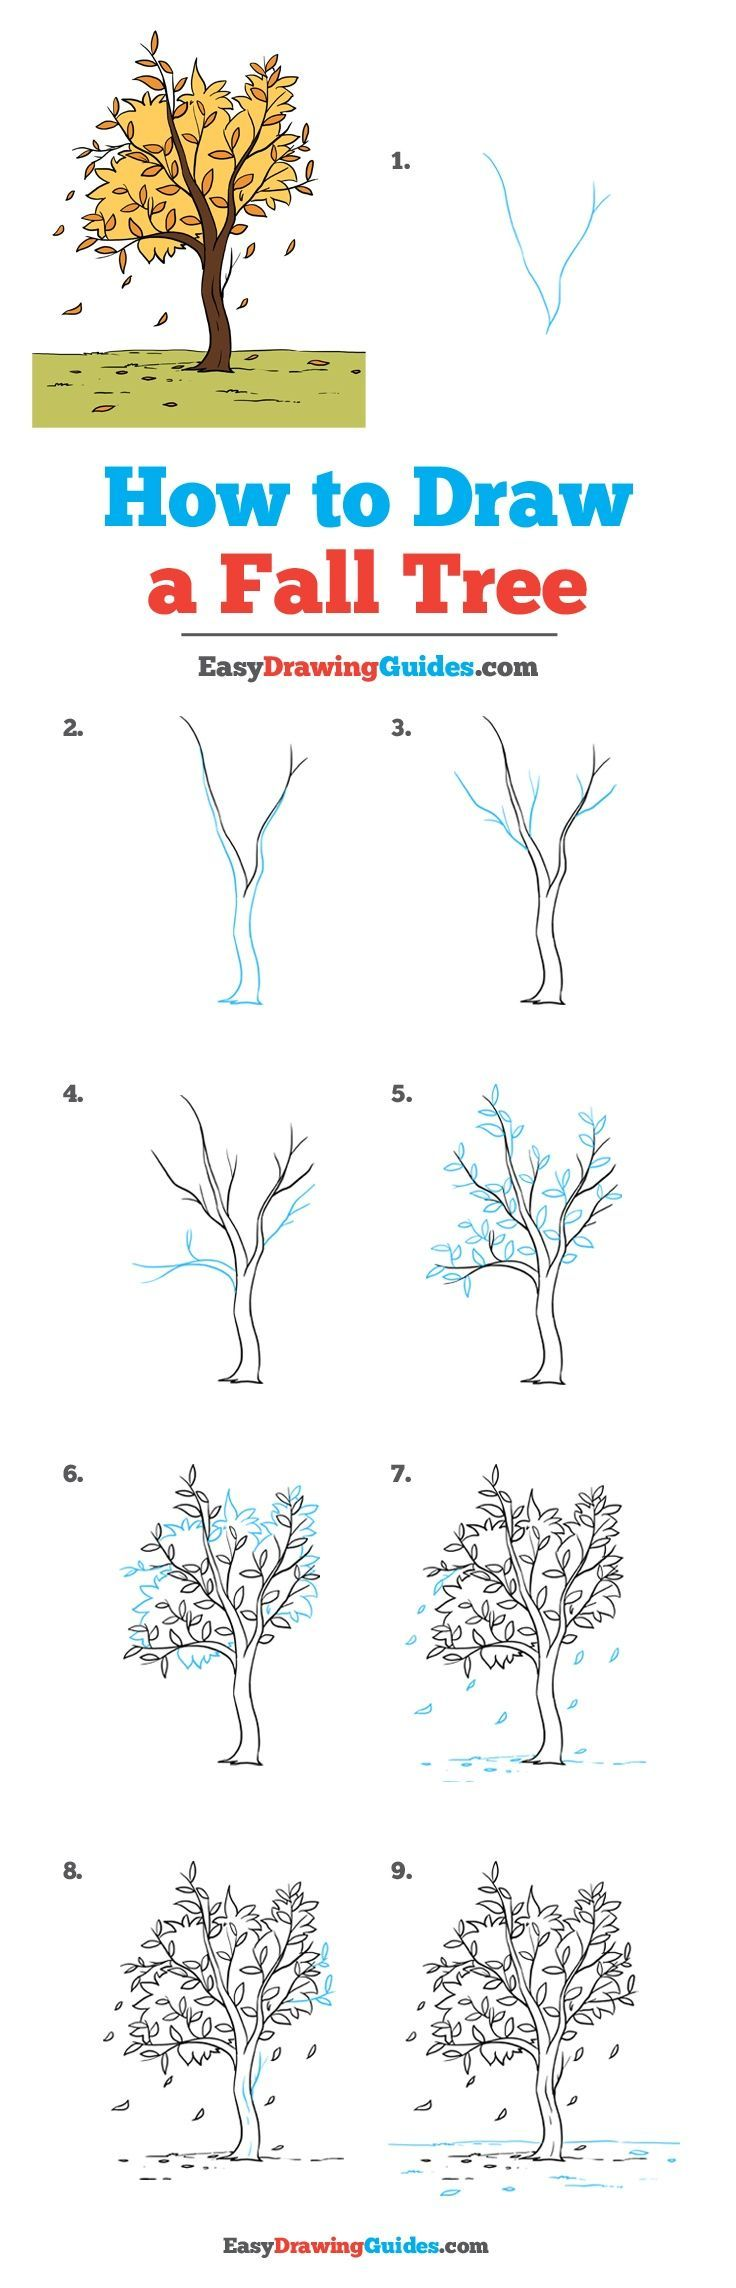 How to Draw a Fall Tree #falltrees